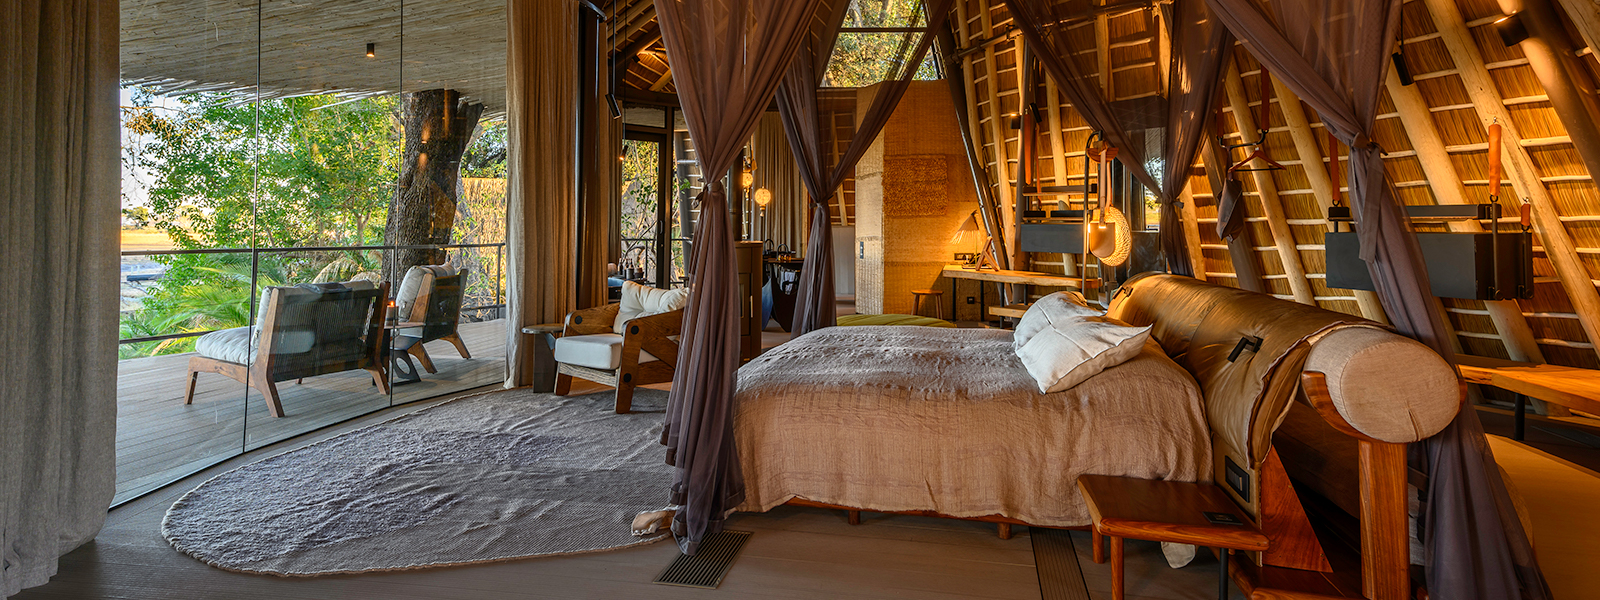 Jao Camp guest rooms boast private plunge pools as well as inside and outside showers